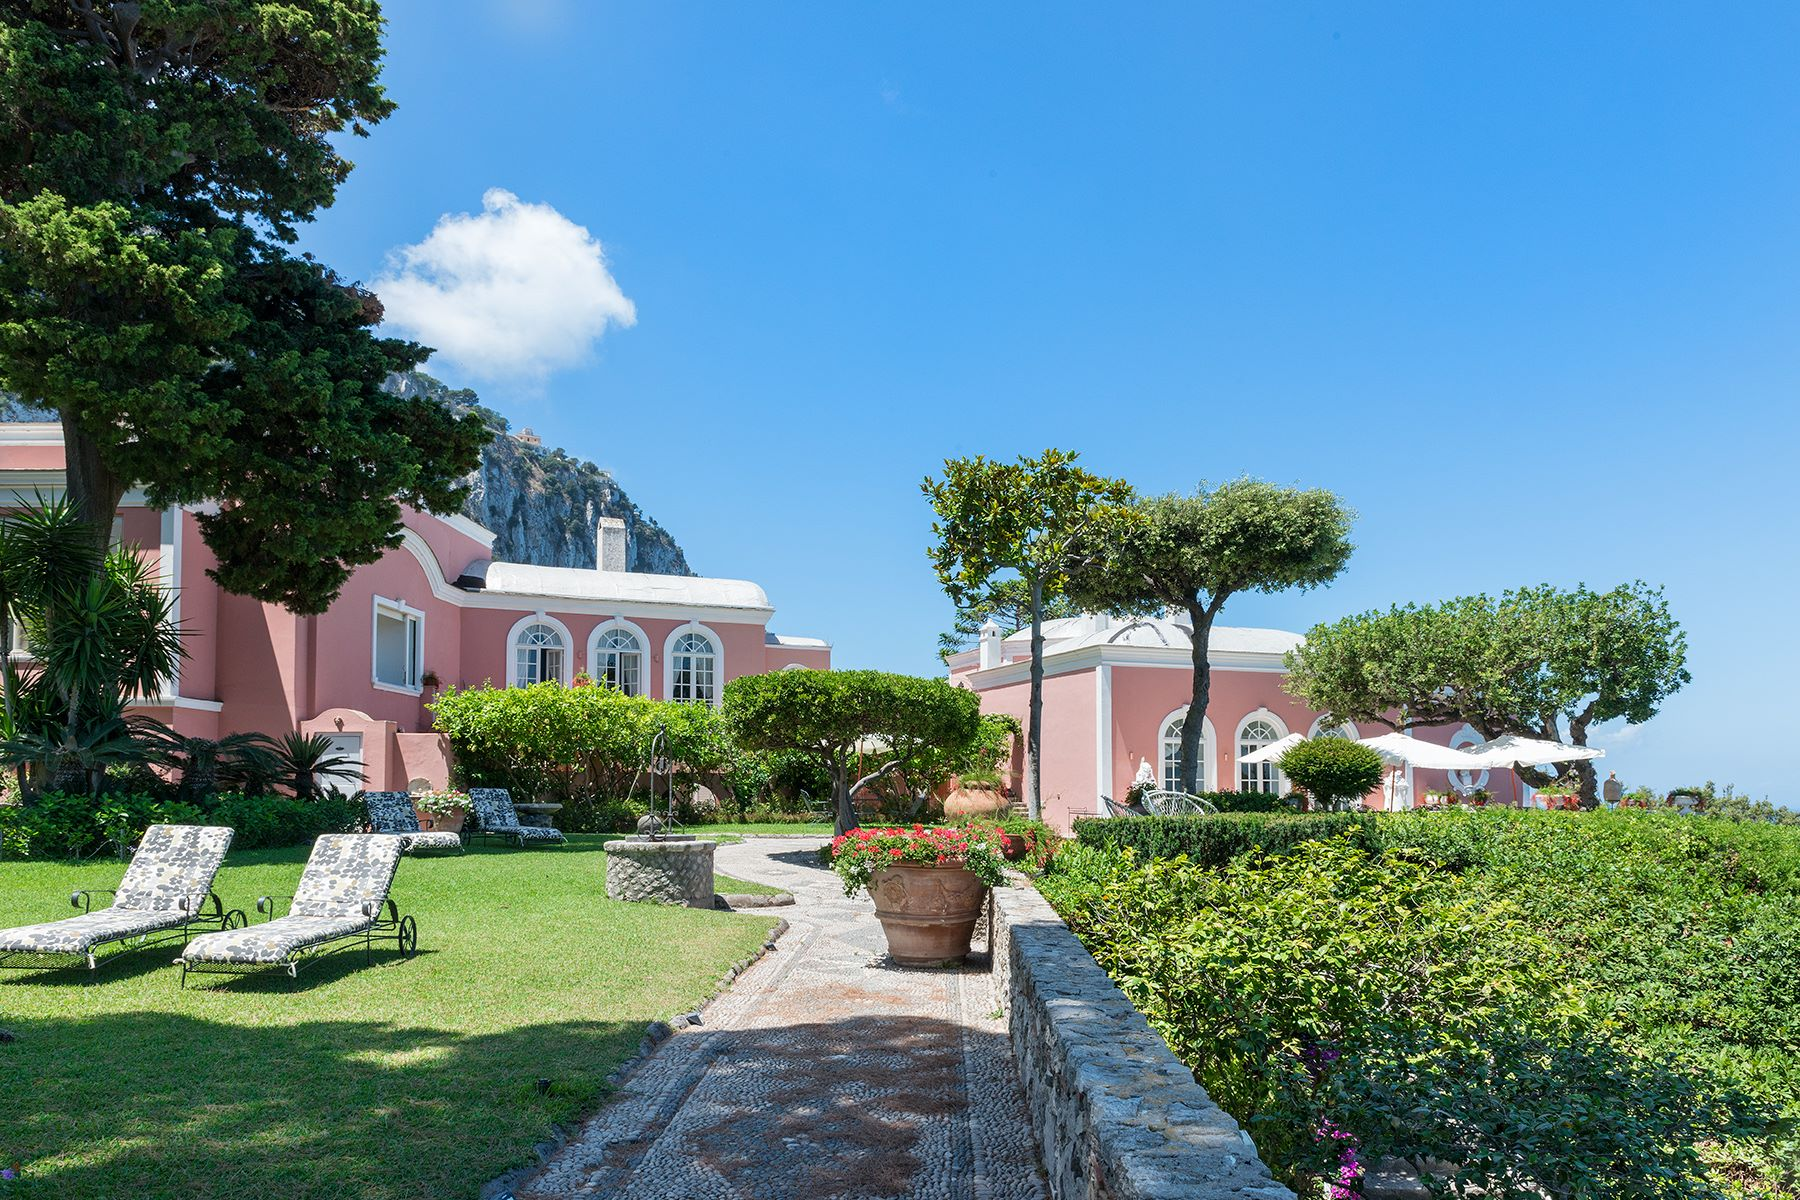 Property のために 売買 アット Villa Bismarck, an extraordinarily unique location in Capri Capri, ナポリ イタリア